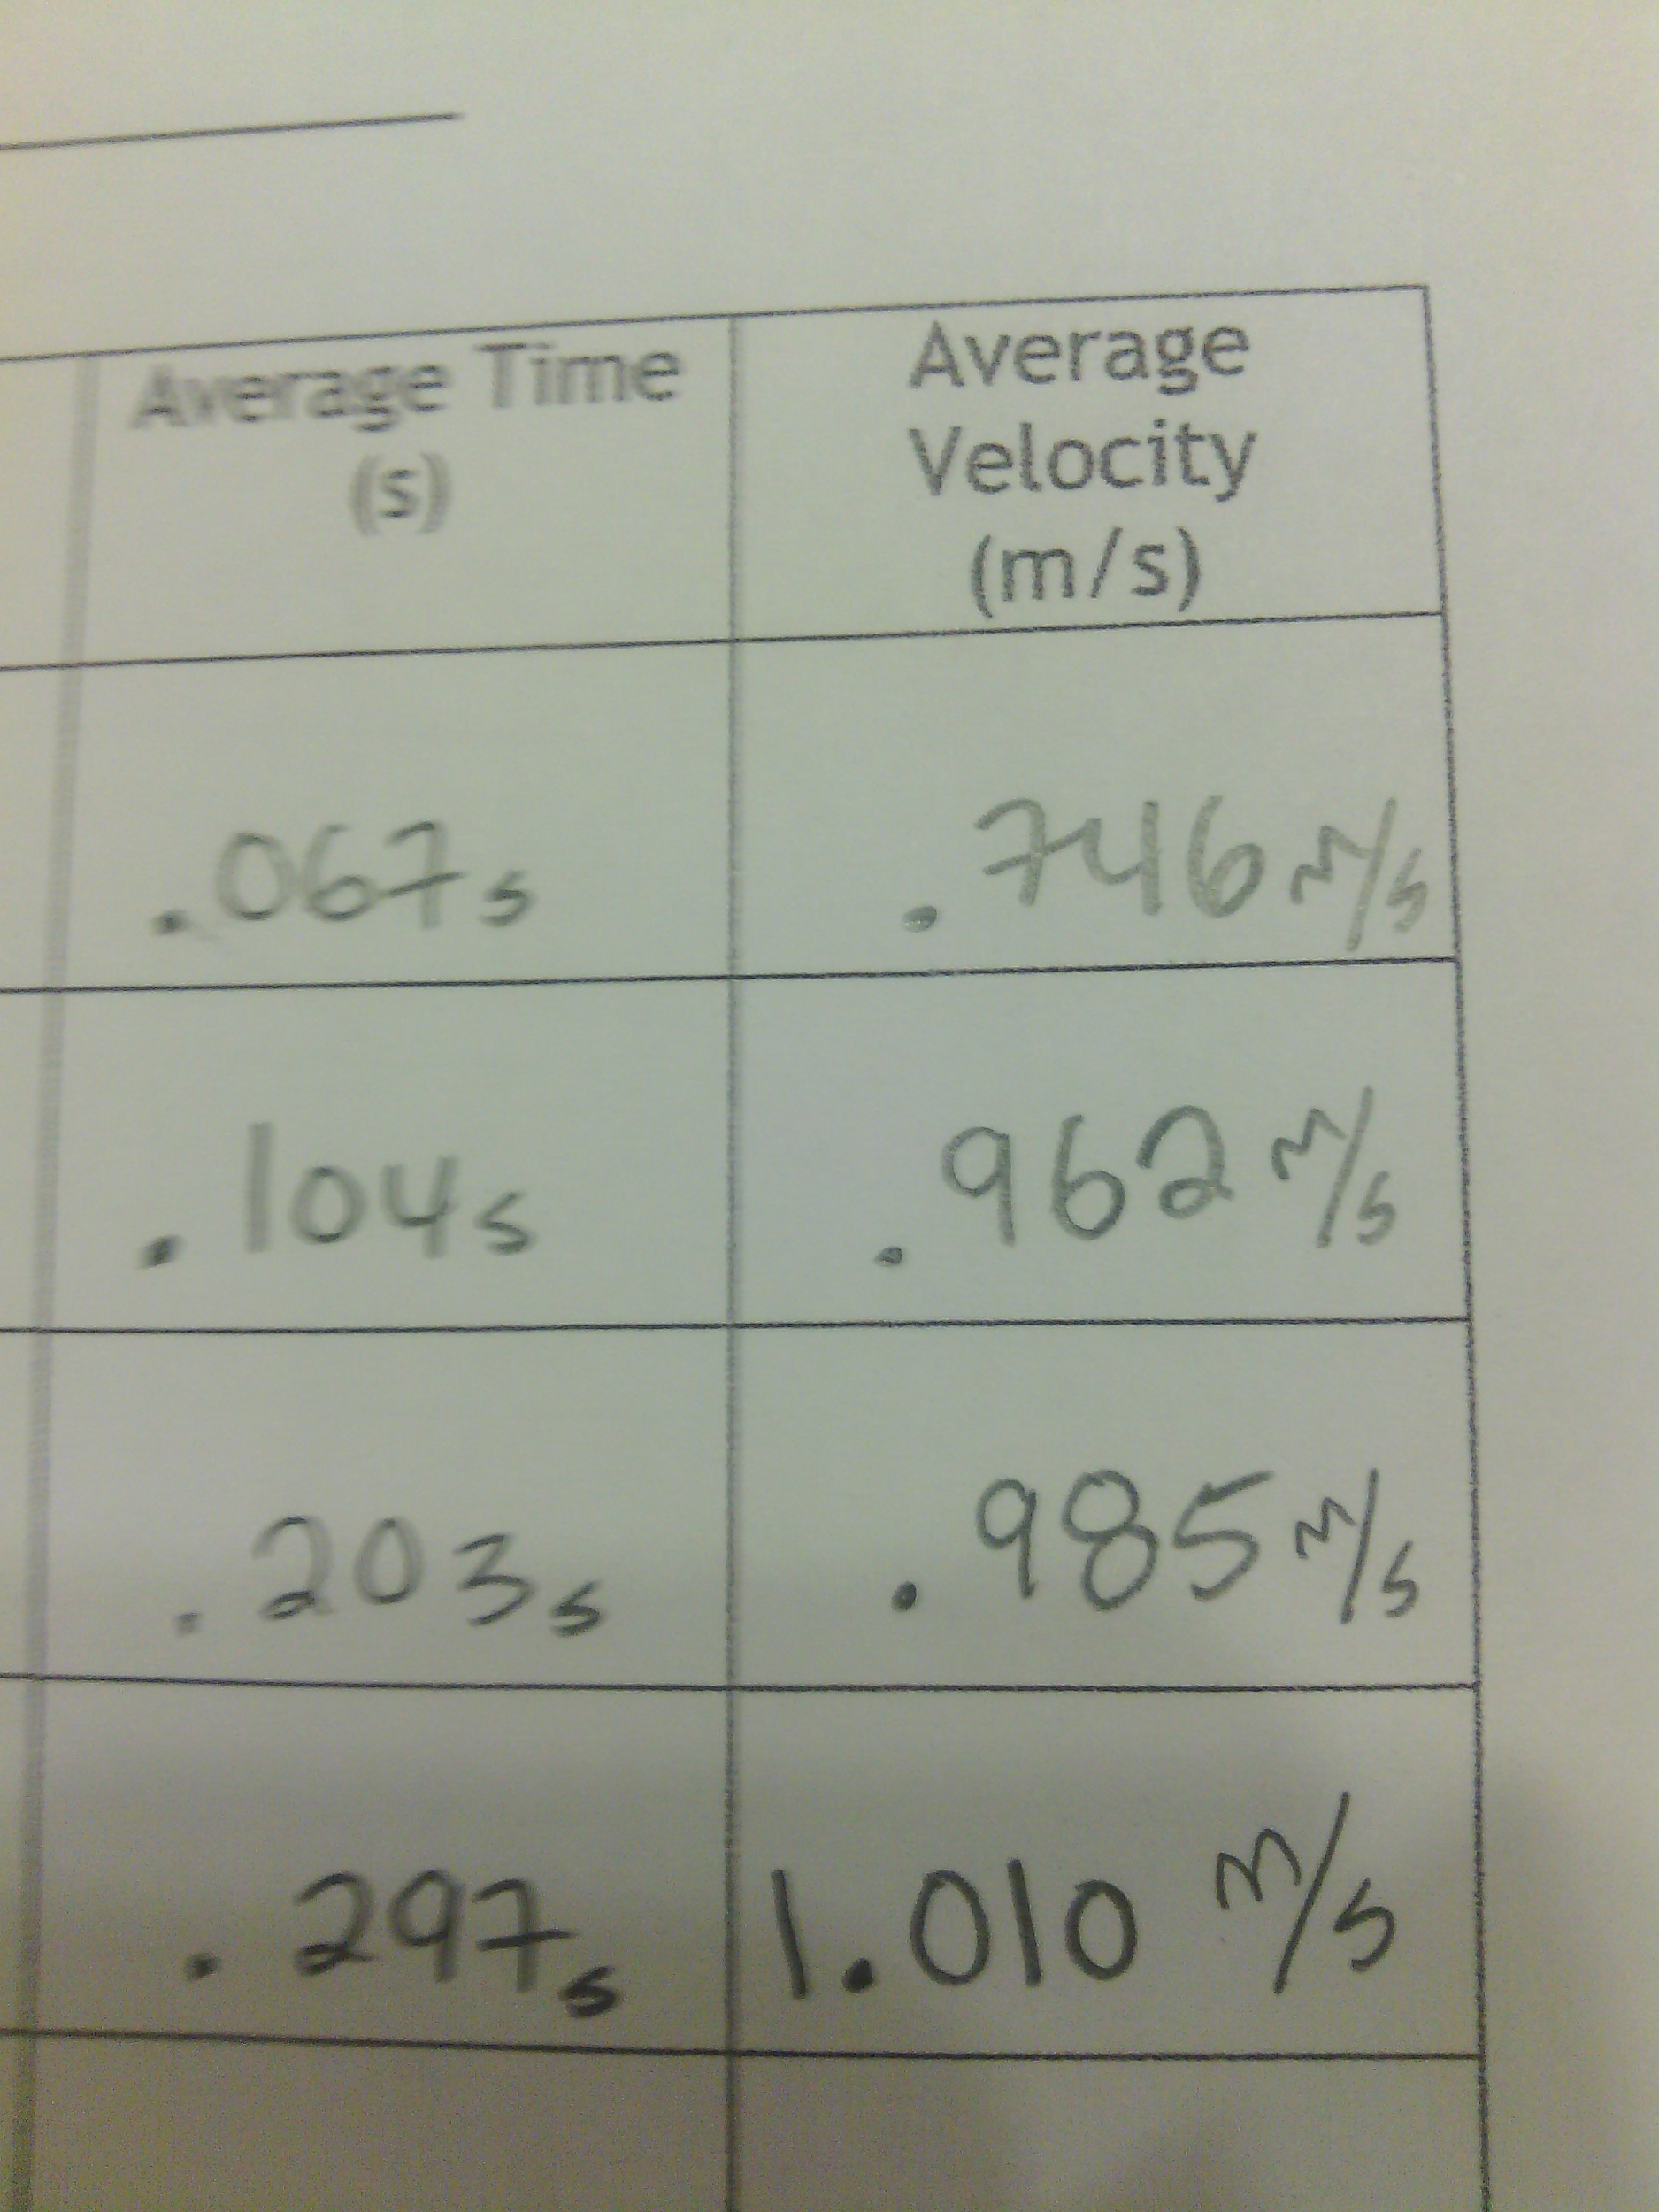 Draw a graph showing average time(s) and average v